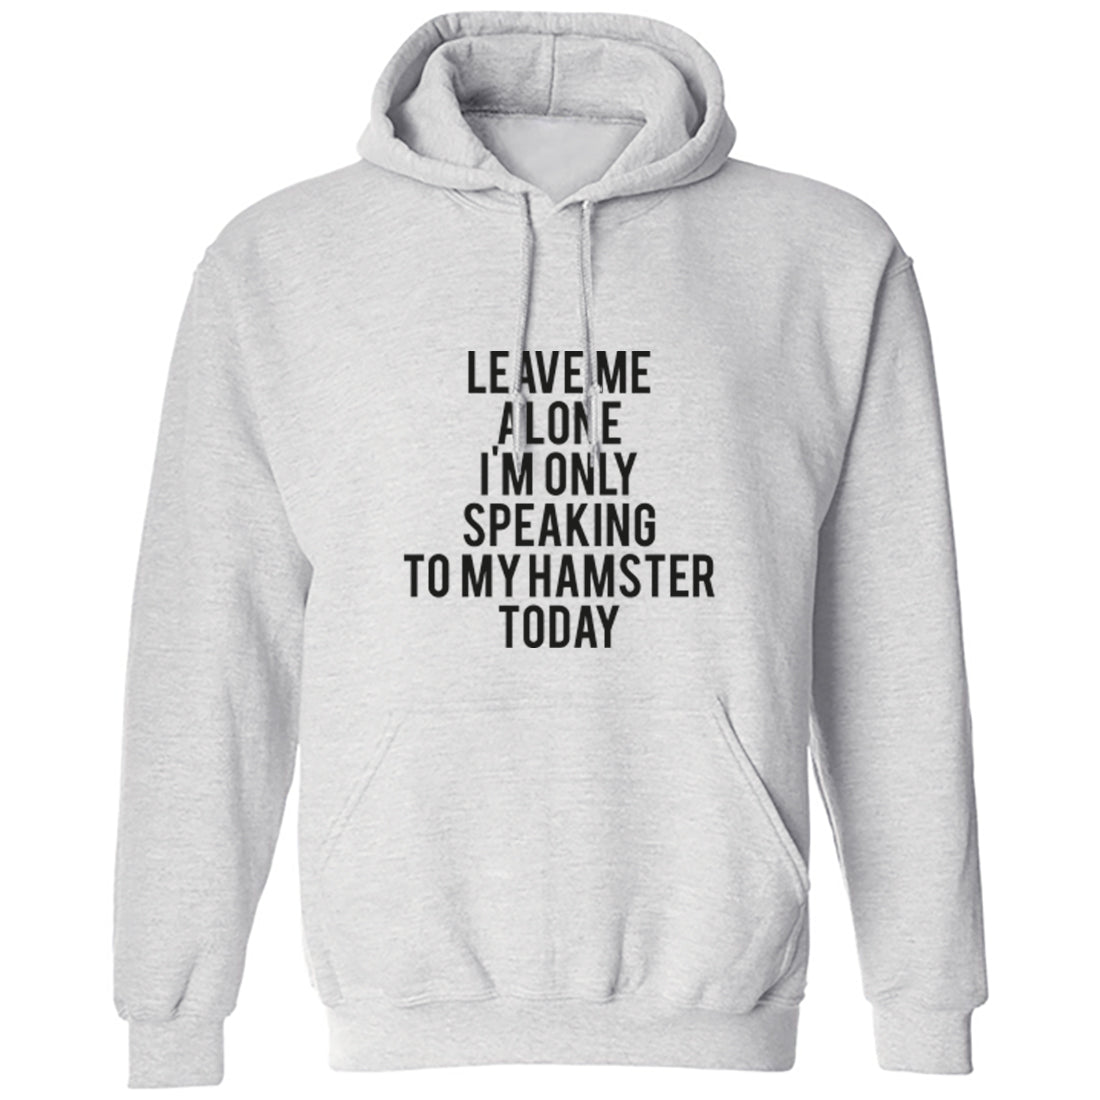 Leave Me Alone I'm Only Speaking To My Hamster Today Unisex Hoodie K0953 - Illustrated Identity Ltd.